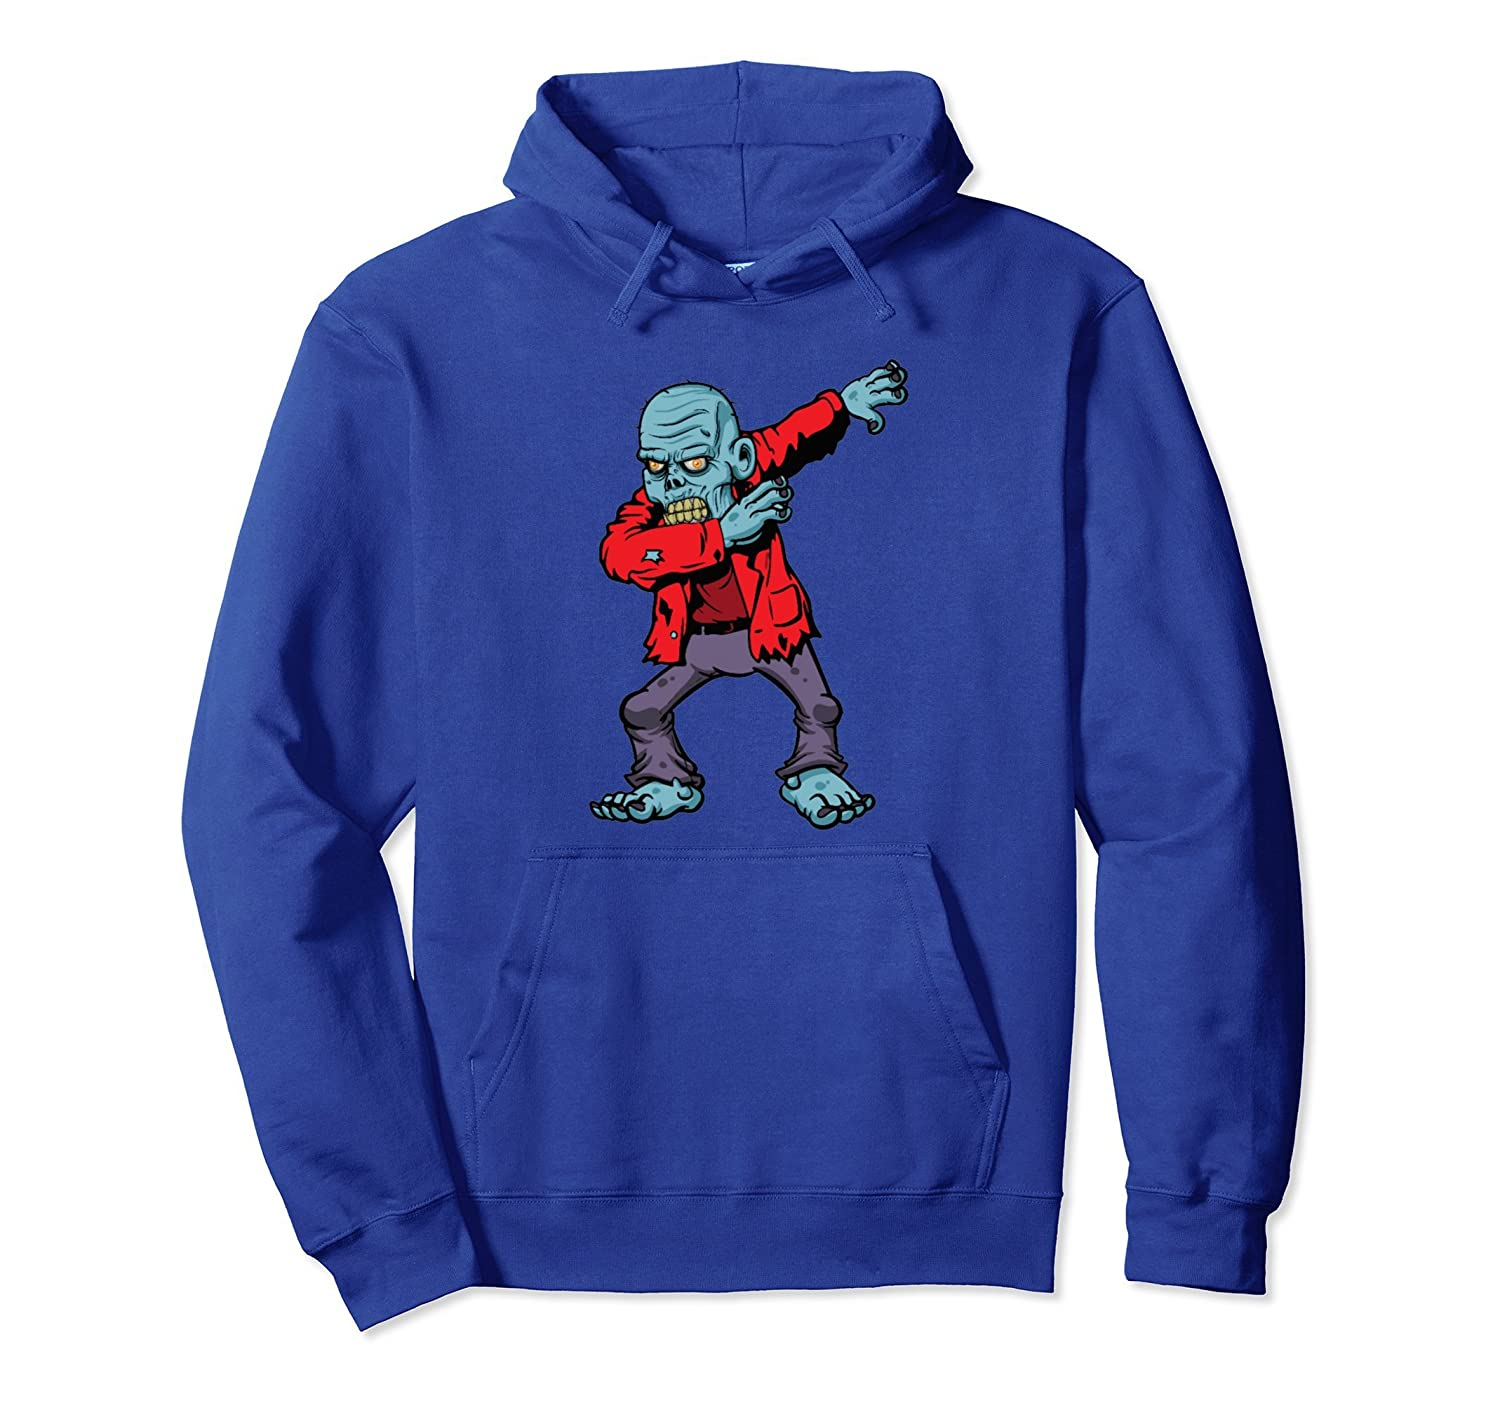 Zombie Dabbing Shirt Funny Halloween Costume Scary Dab Tee-mt